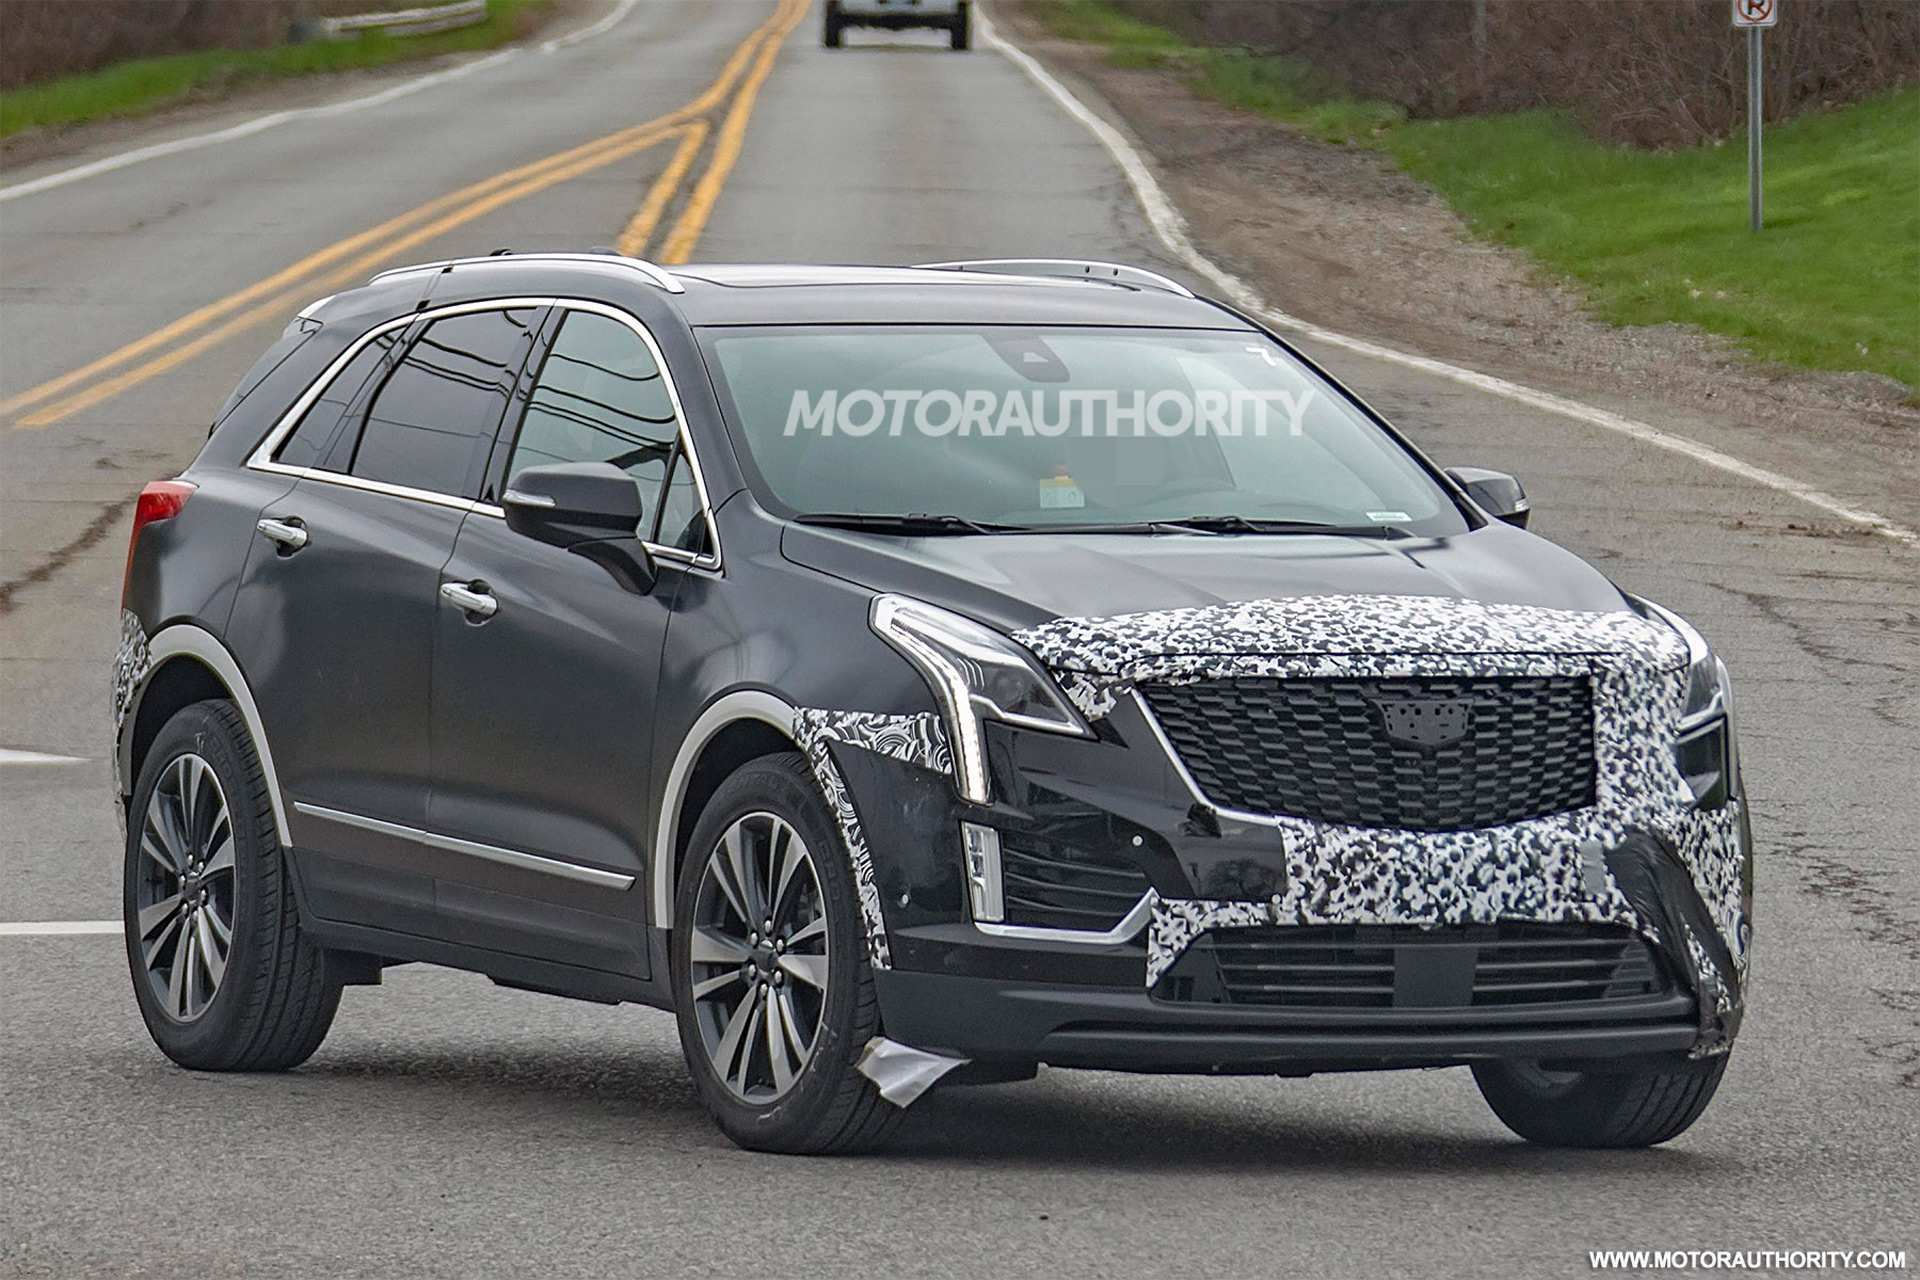 98 Concept of New Cadillac Xt5 2020 Engine with New Cadillac Xt5 2020